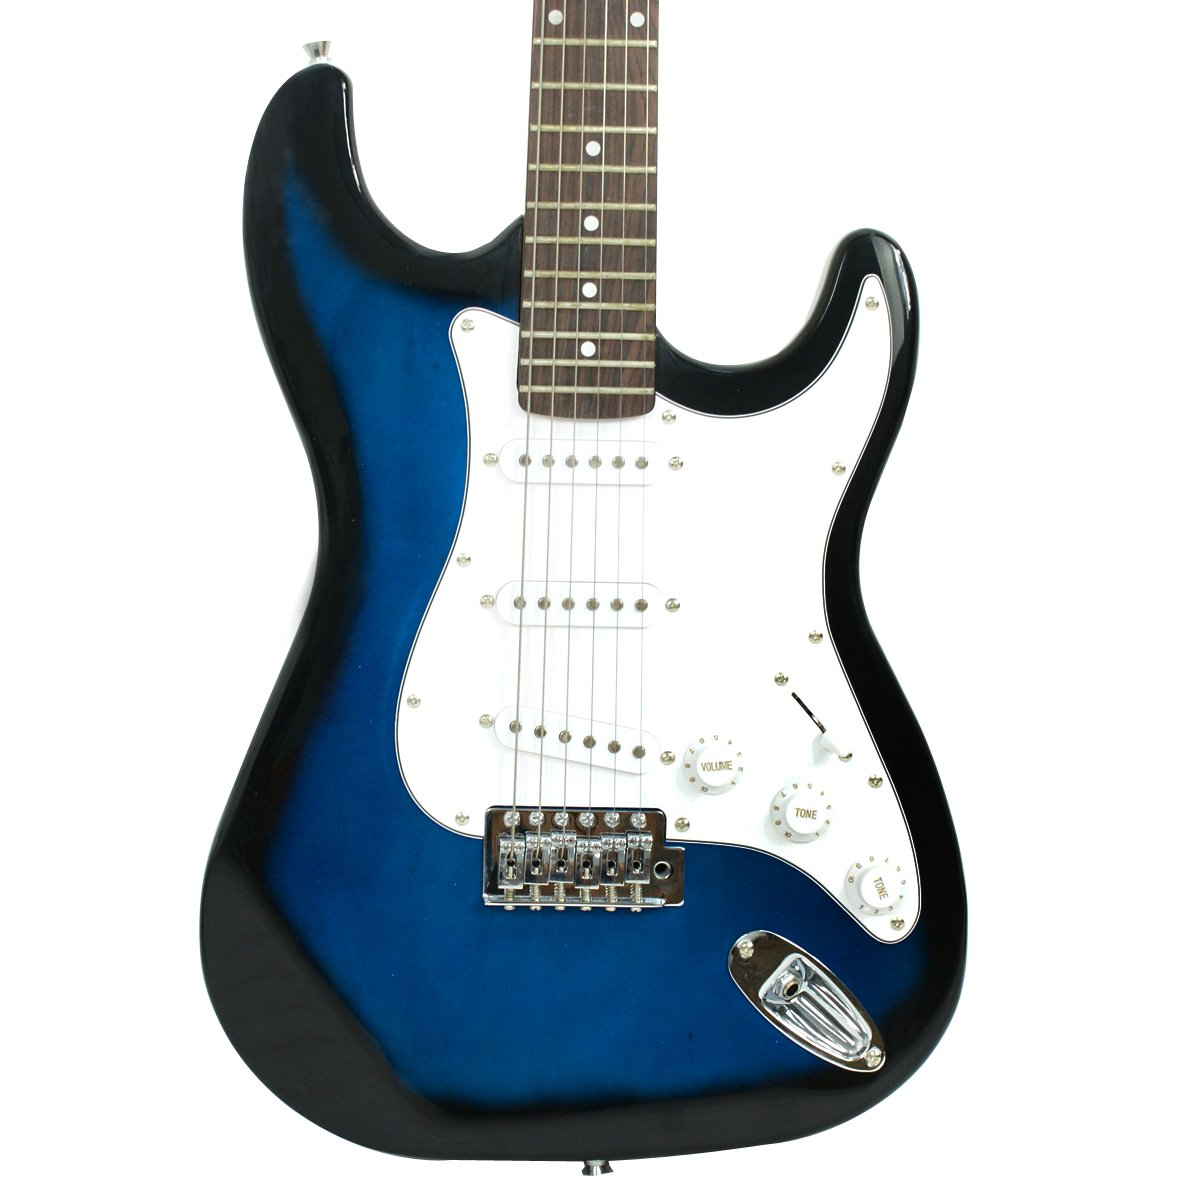 Base of the Blue ZENY Electric Guitar